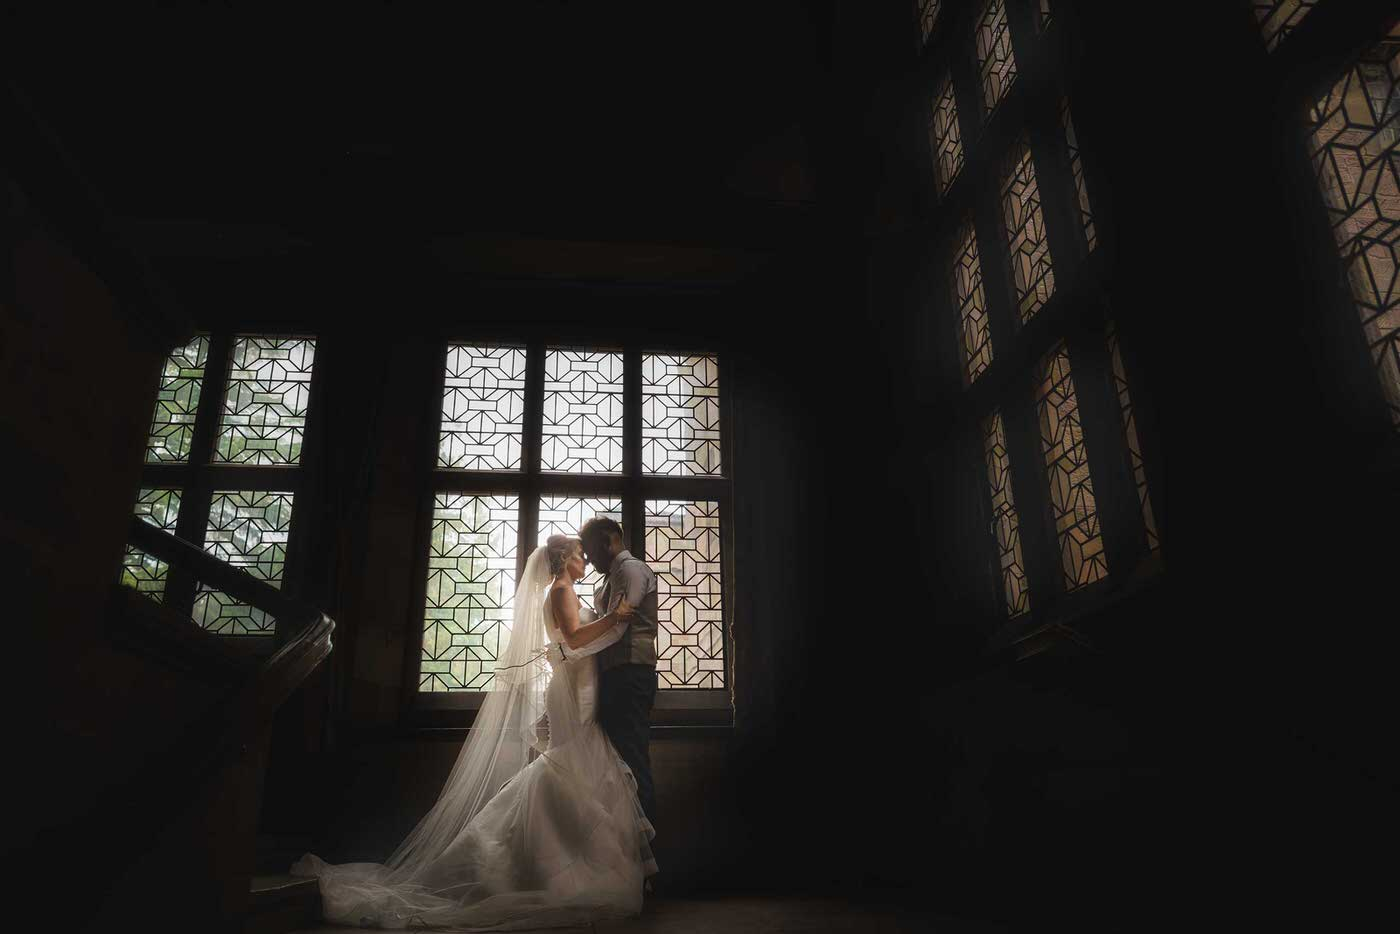 Bride and groom at Adcote School in Shropshire